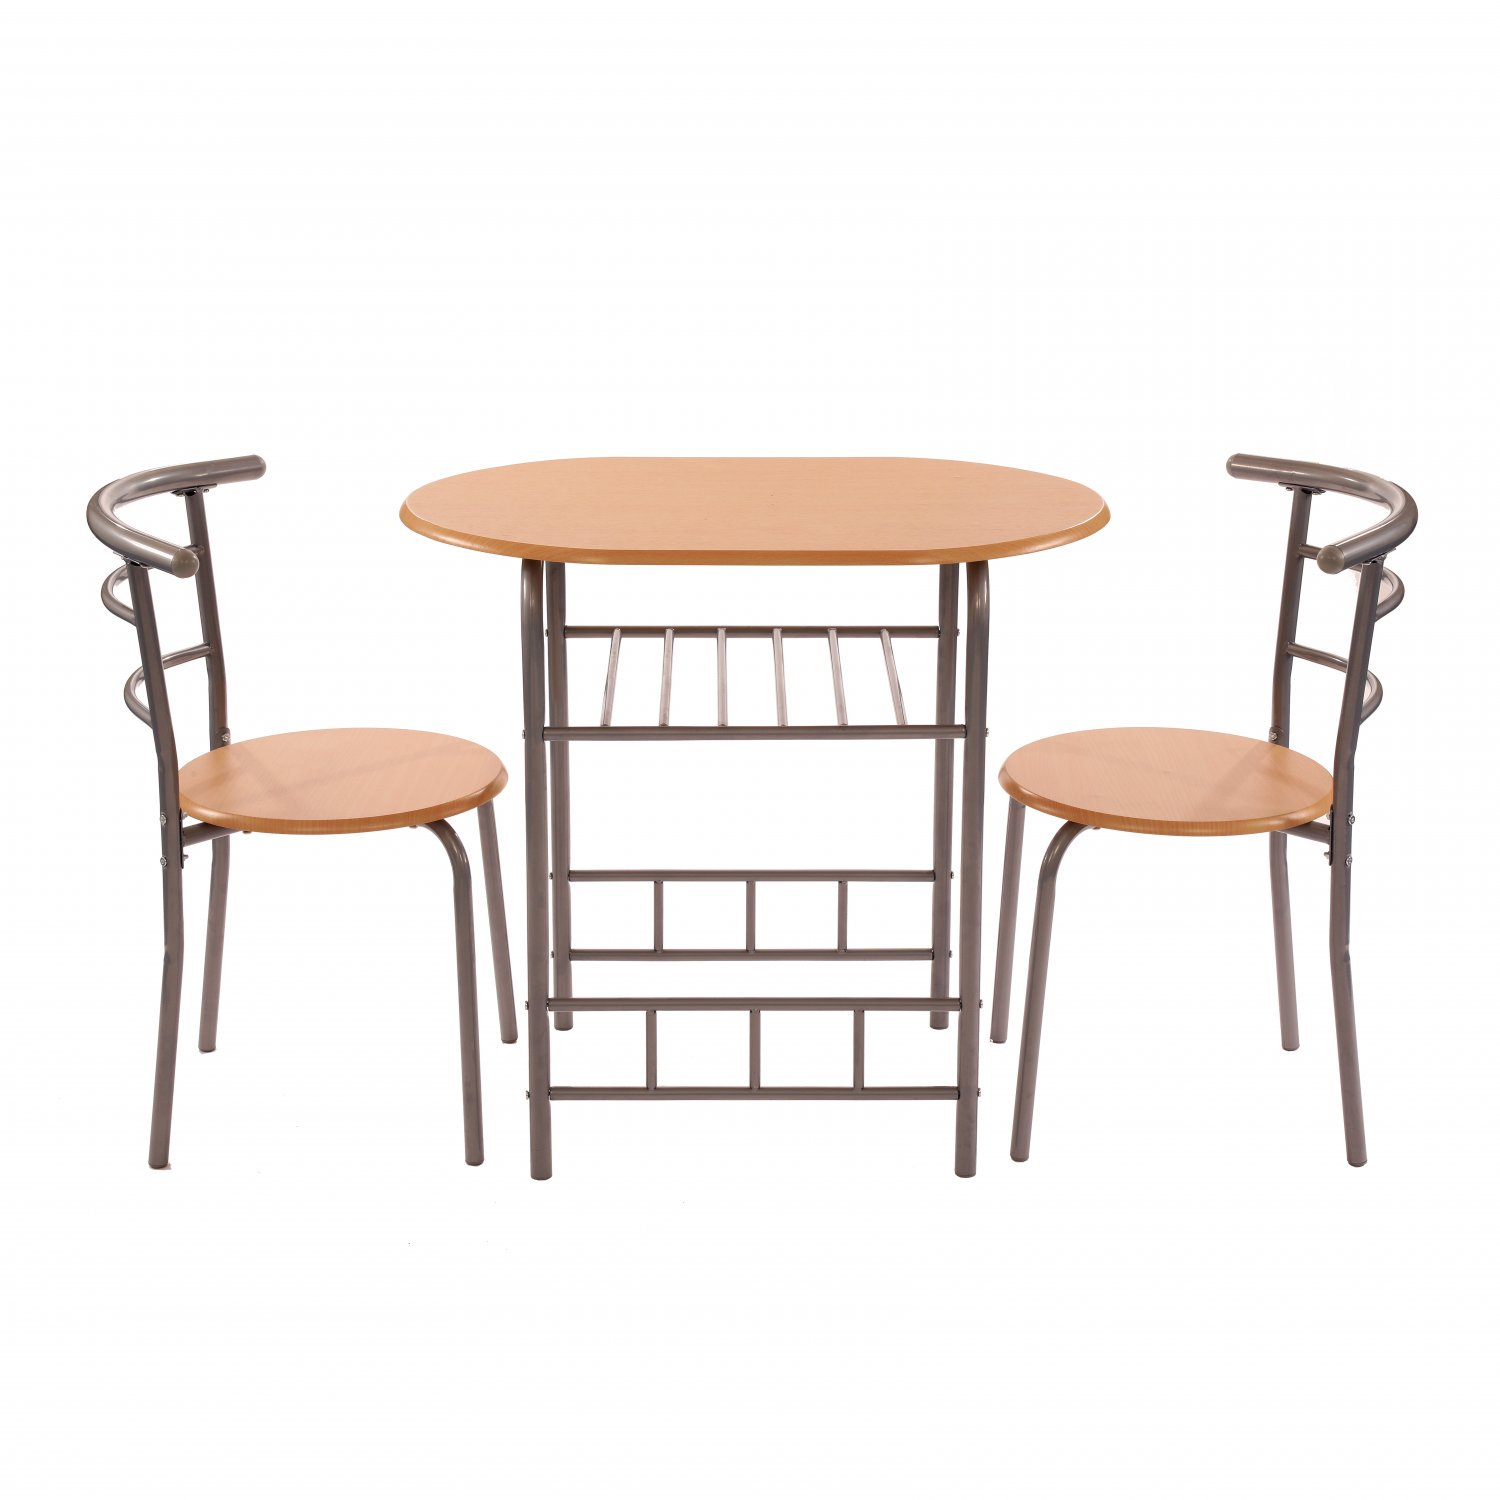 3pc Dining Kitchen Table and Chairs Set Breakfast Bar Furniture